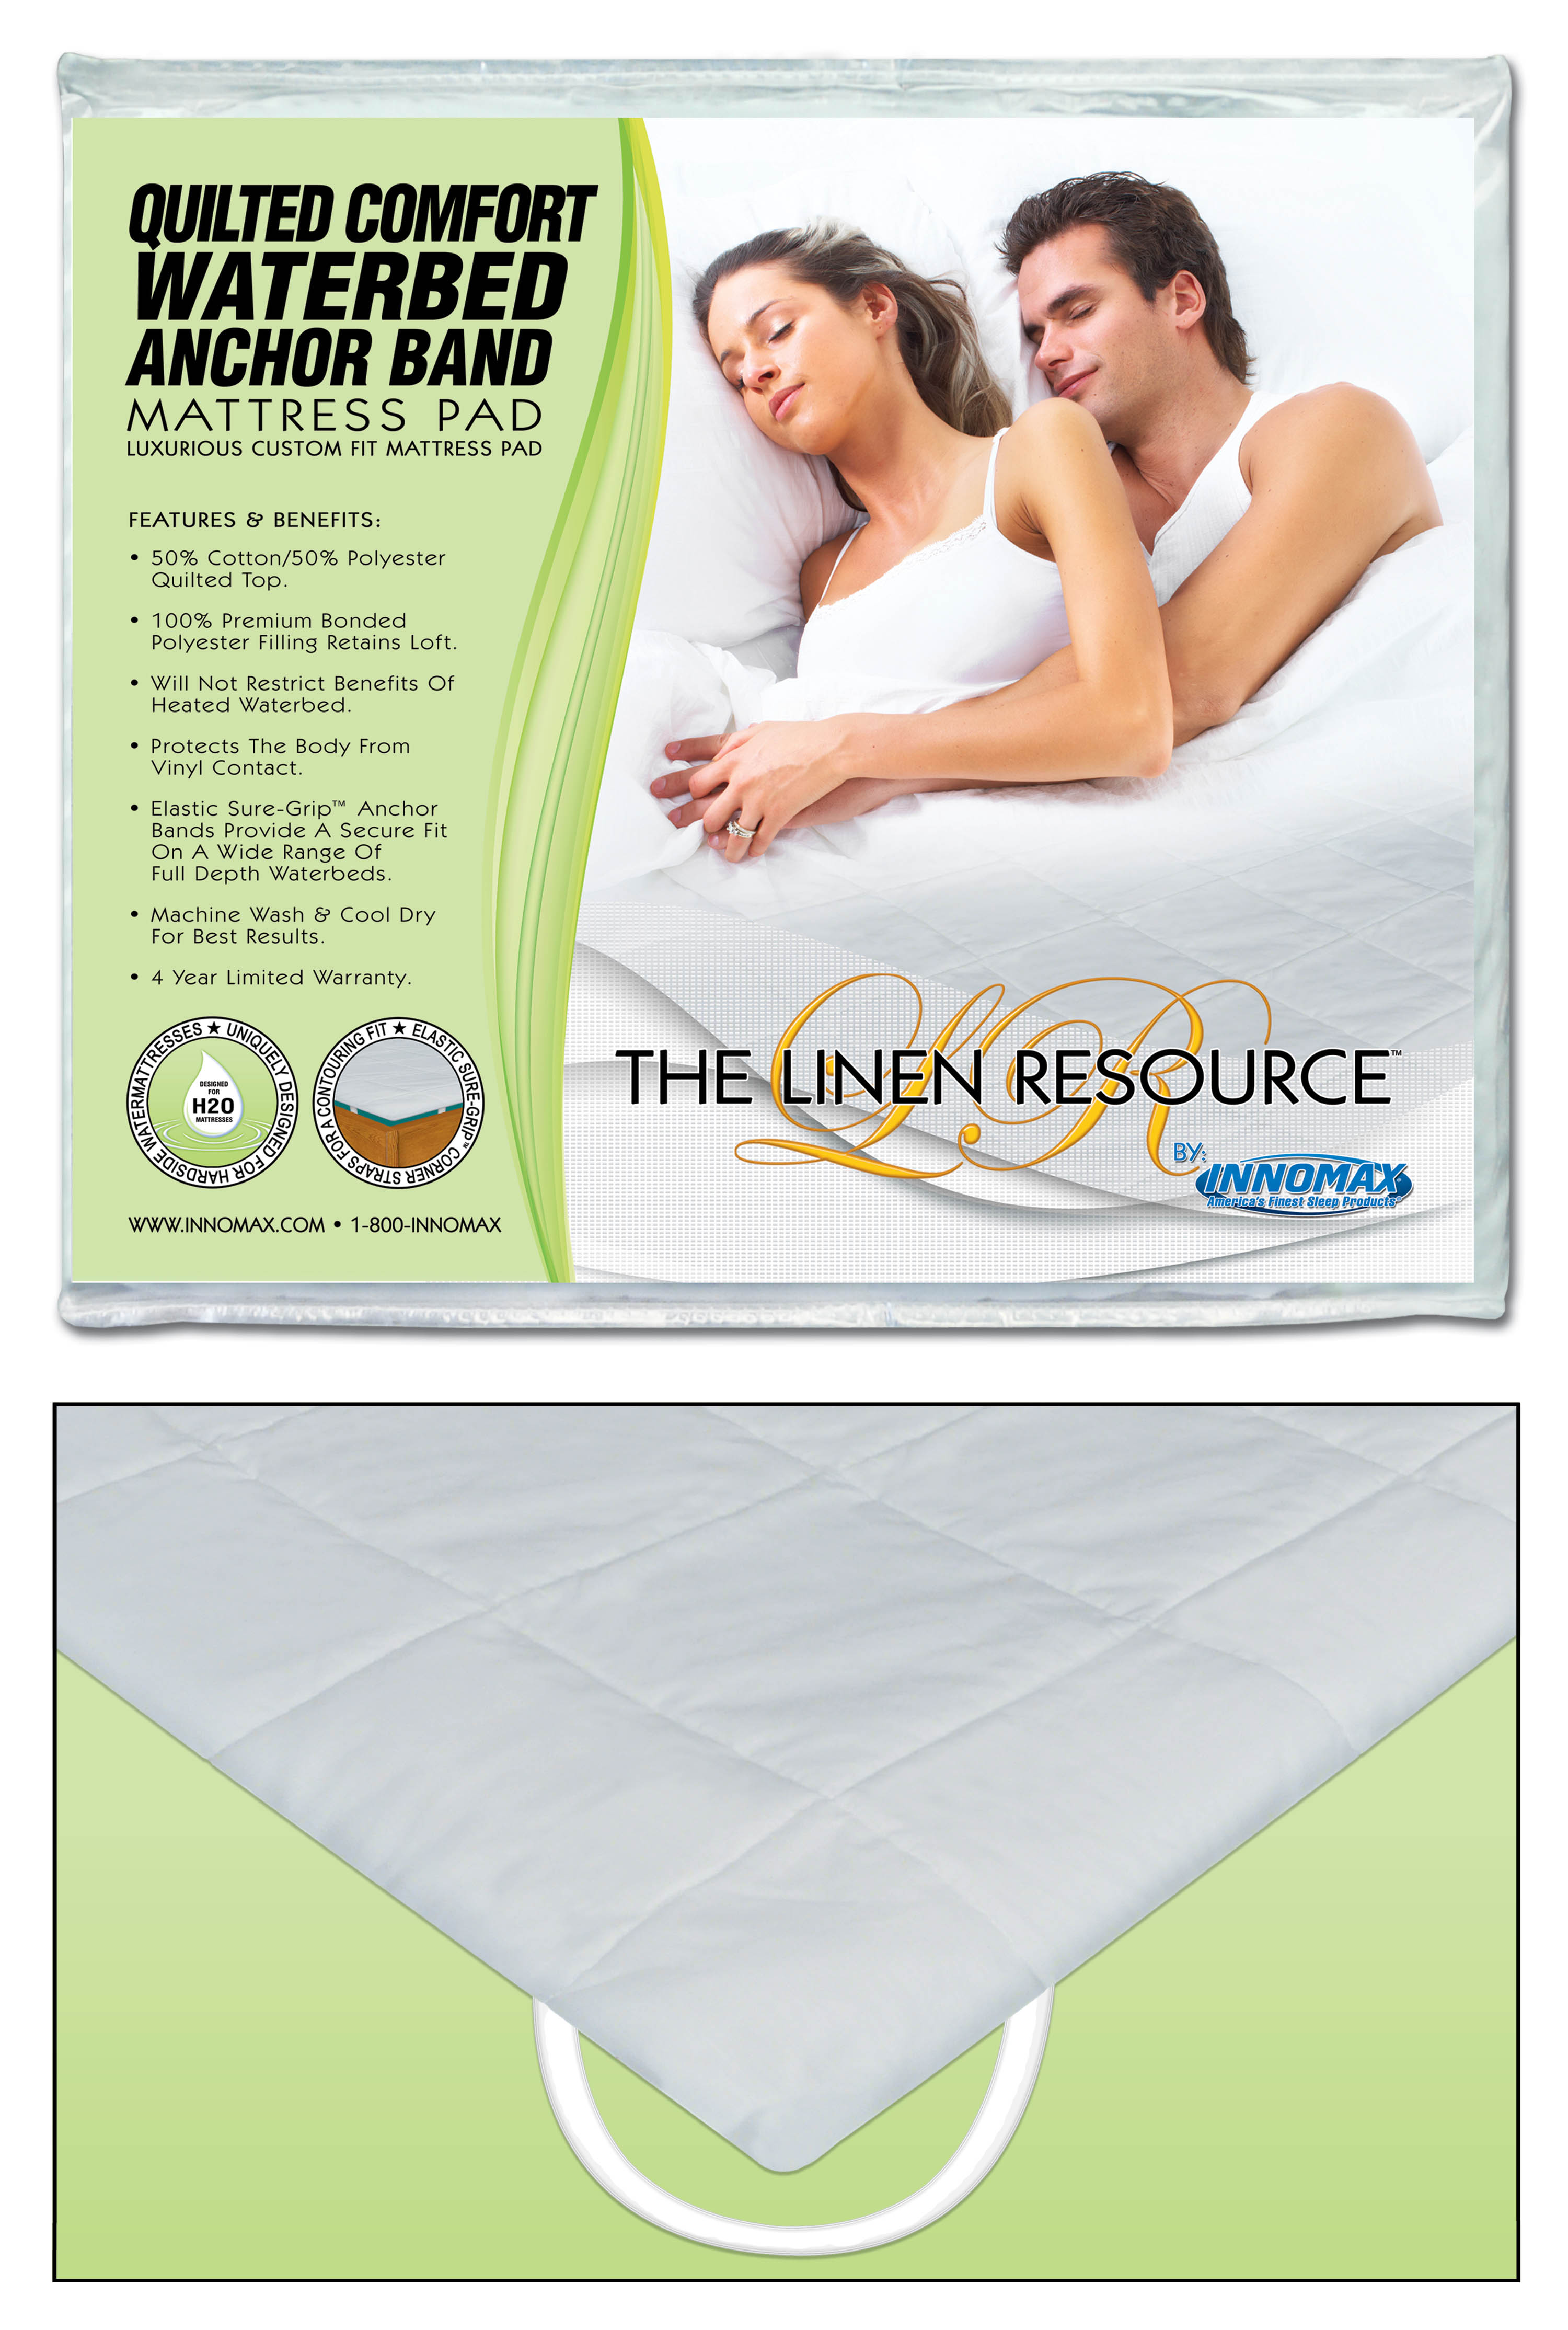 mattress resource anchor band product pad linen fit comfort waterbed custom quilted the